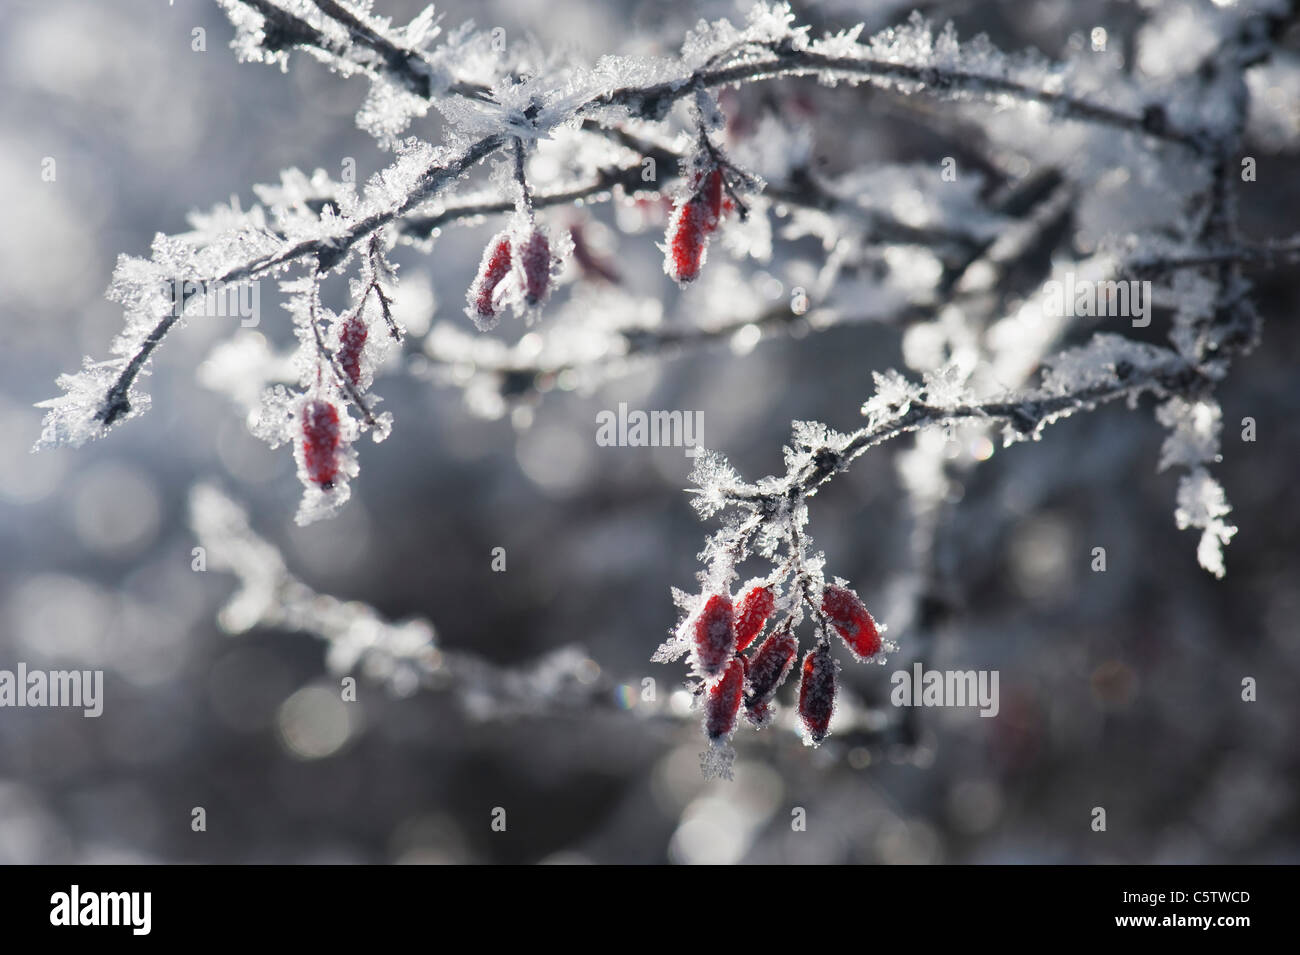 Austria, Salzburger Land, Snow covered bush with red berries - Stock Image